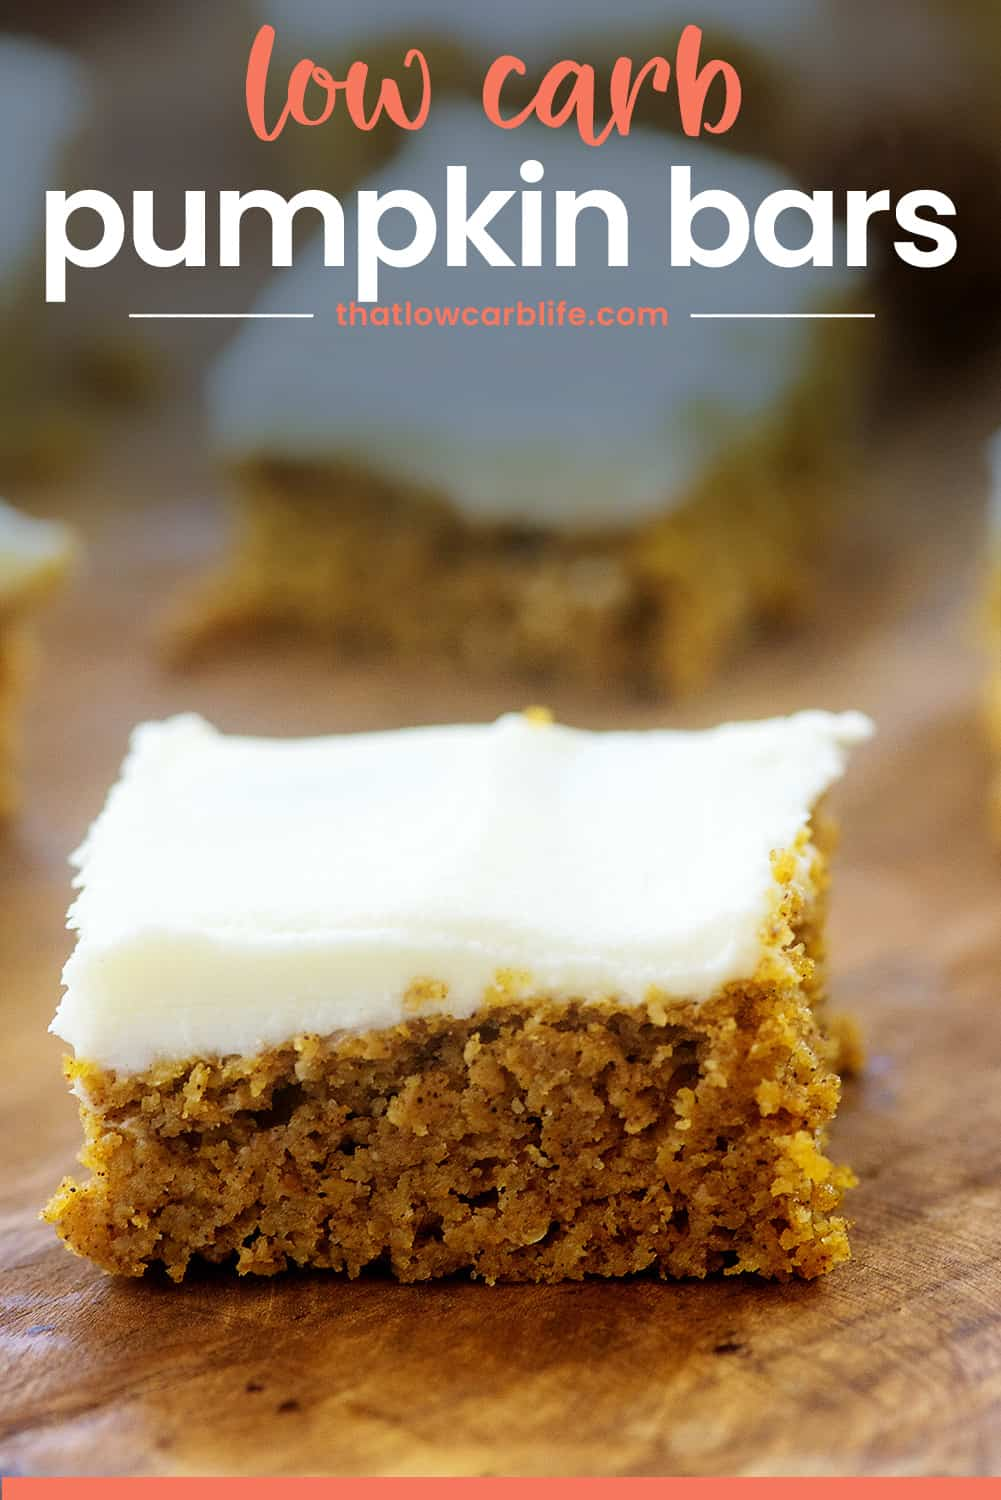 keto pumpkin bar on wooden cutting board with text for Pinterest.